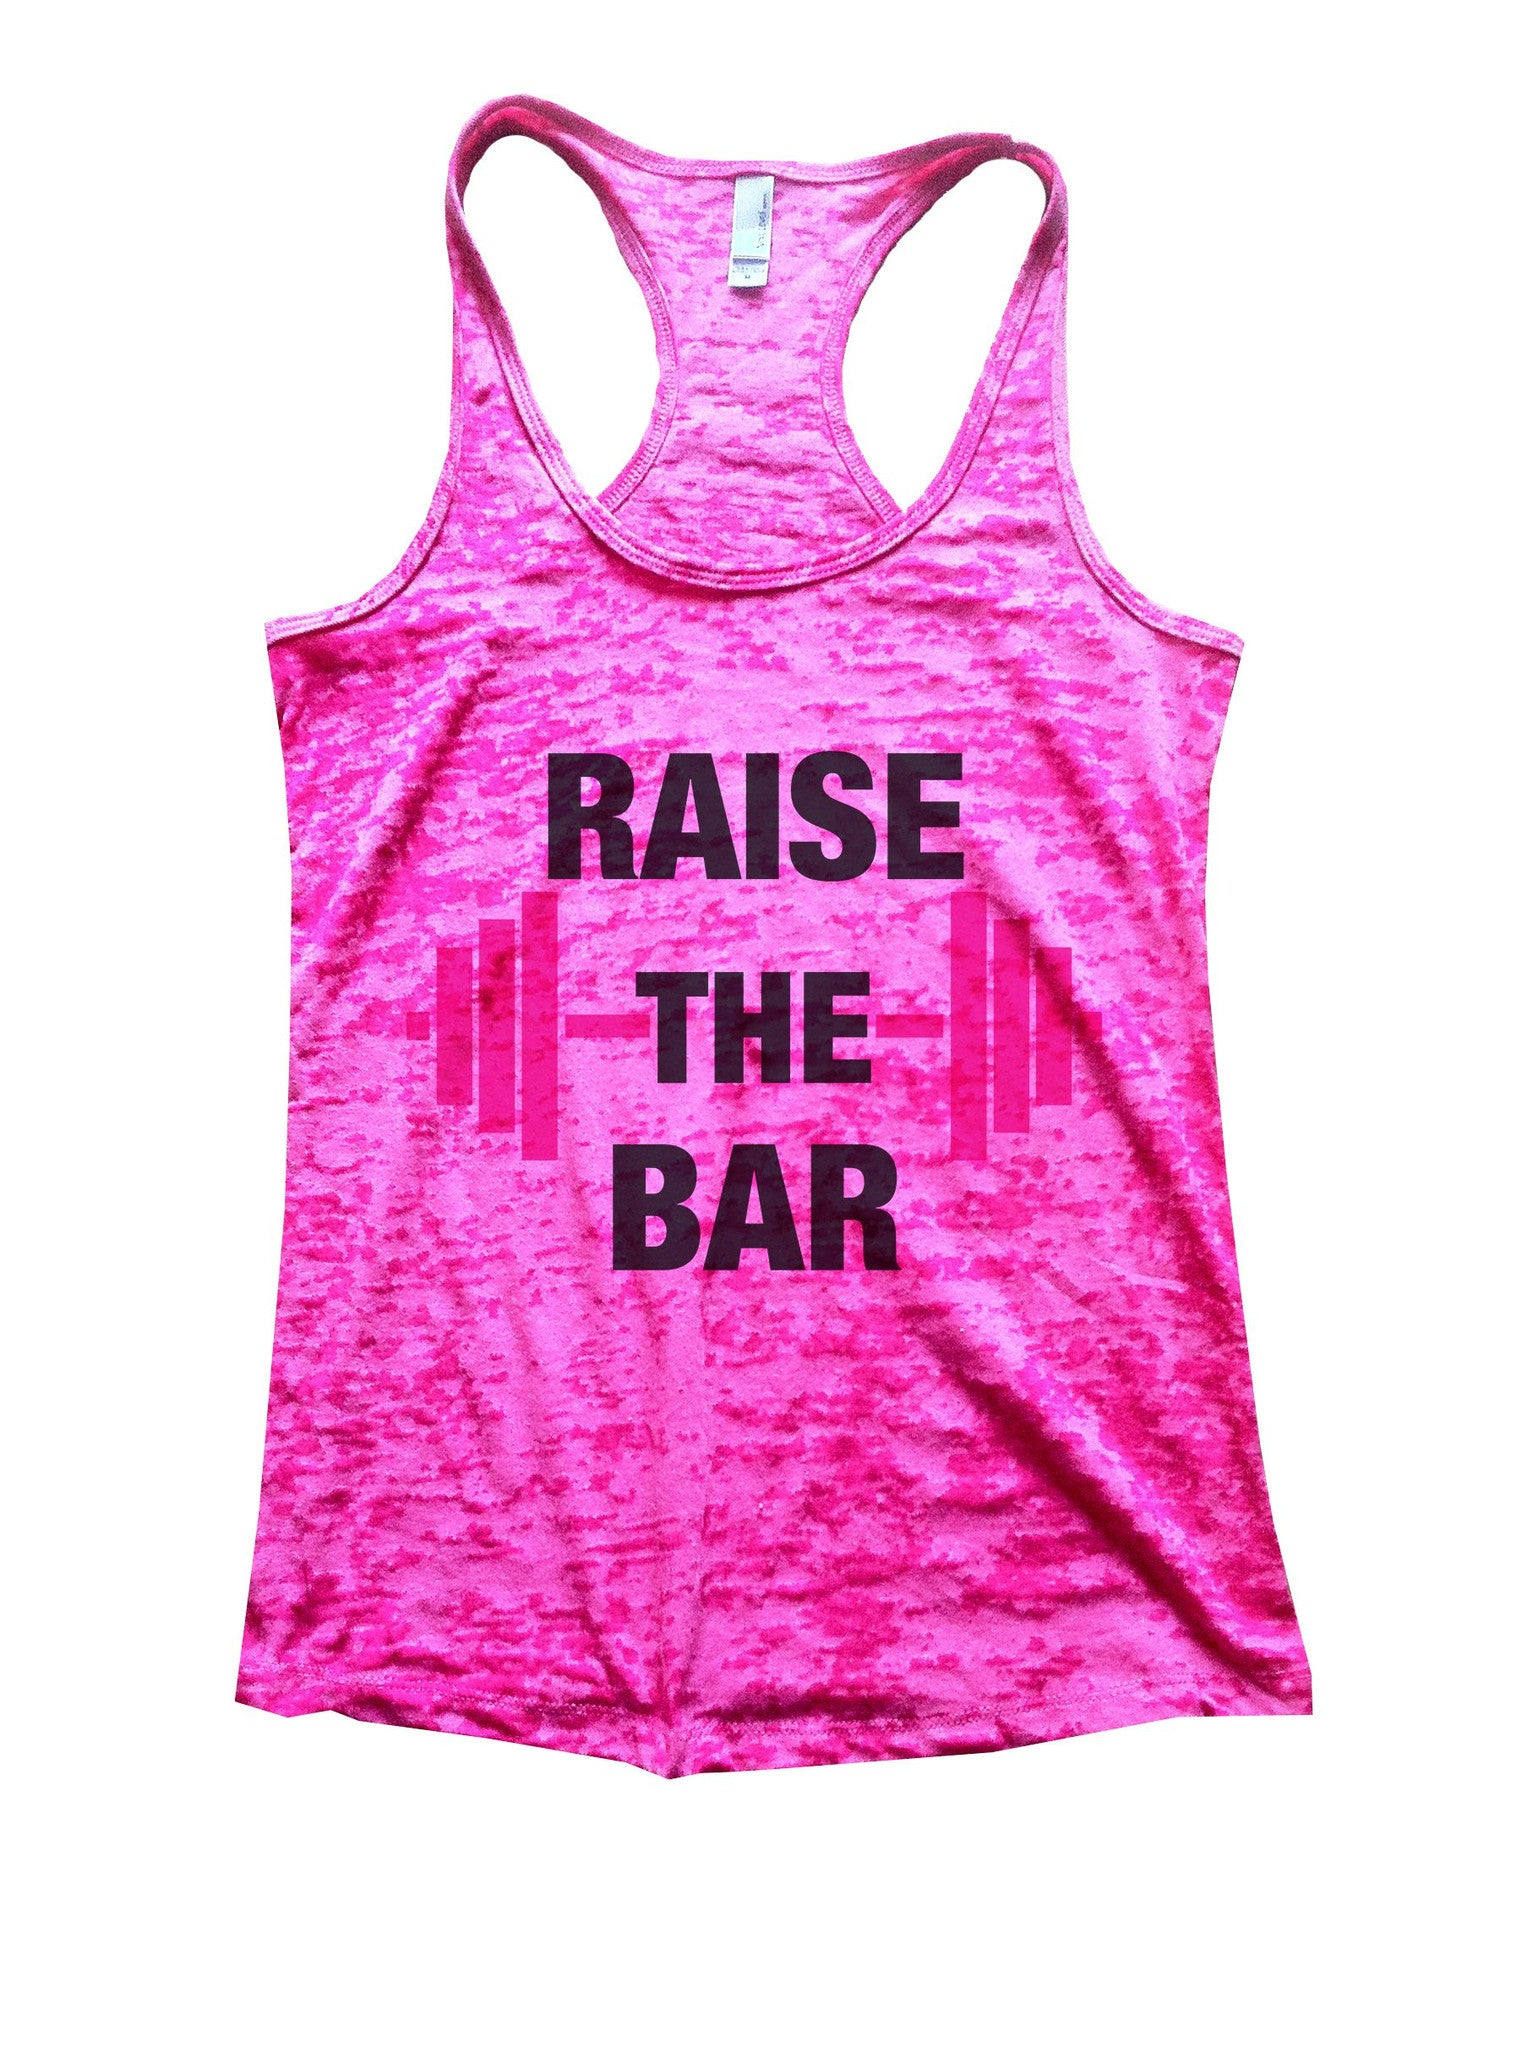 Raise The Bar Burnout Tank Top By BurnoutTankTops.com - 799 - Funny Shirts Tank Tops Burnouts and Triblends  - 5